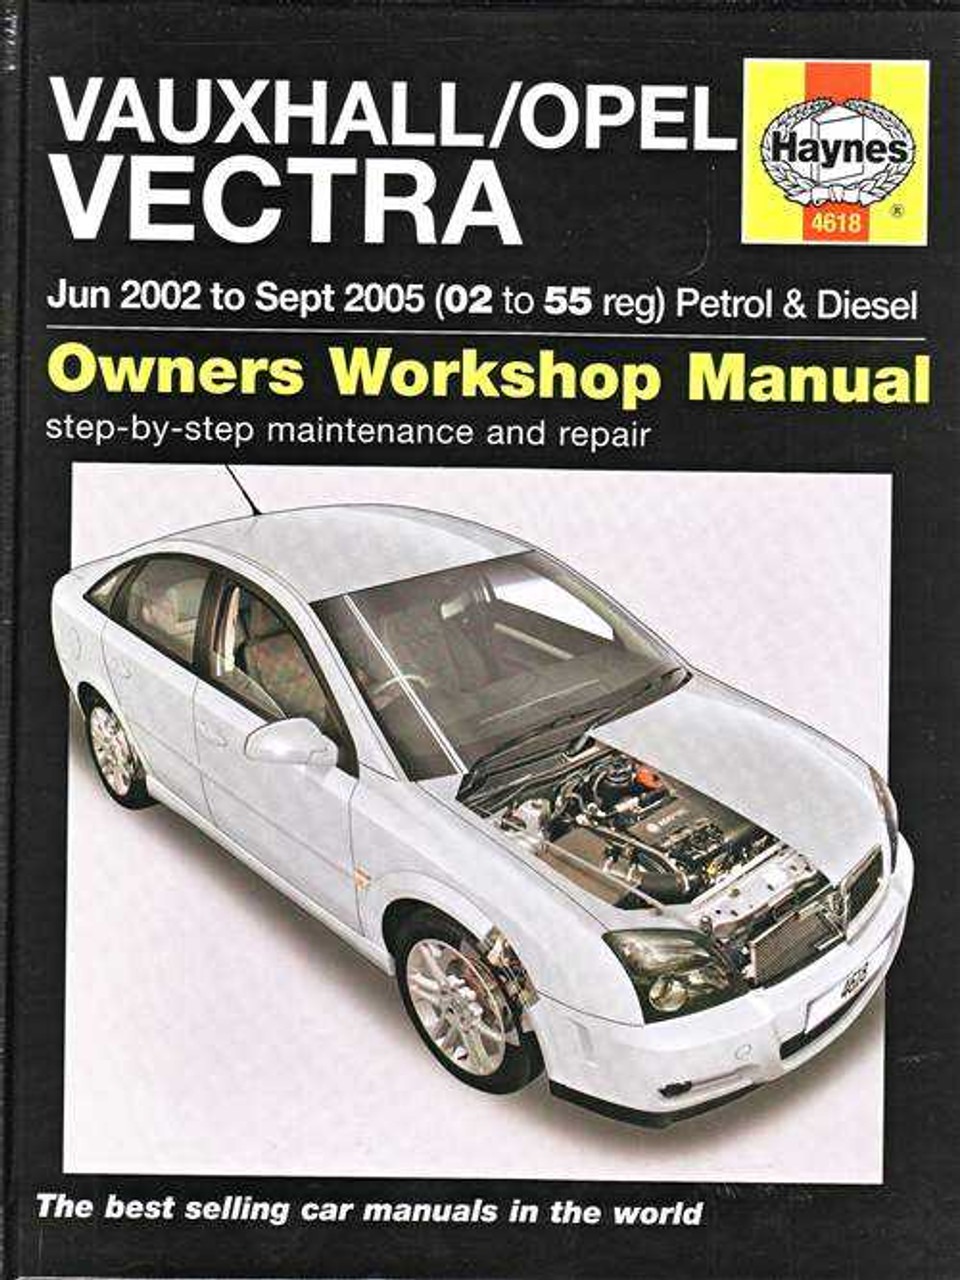 holden vectra 2002 2005 workshop manual rh automotobookshop com au vauxhall astra workshop manual vauxhall zafira workshop manual